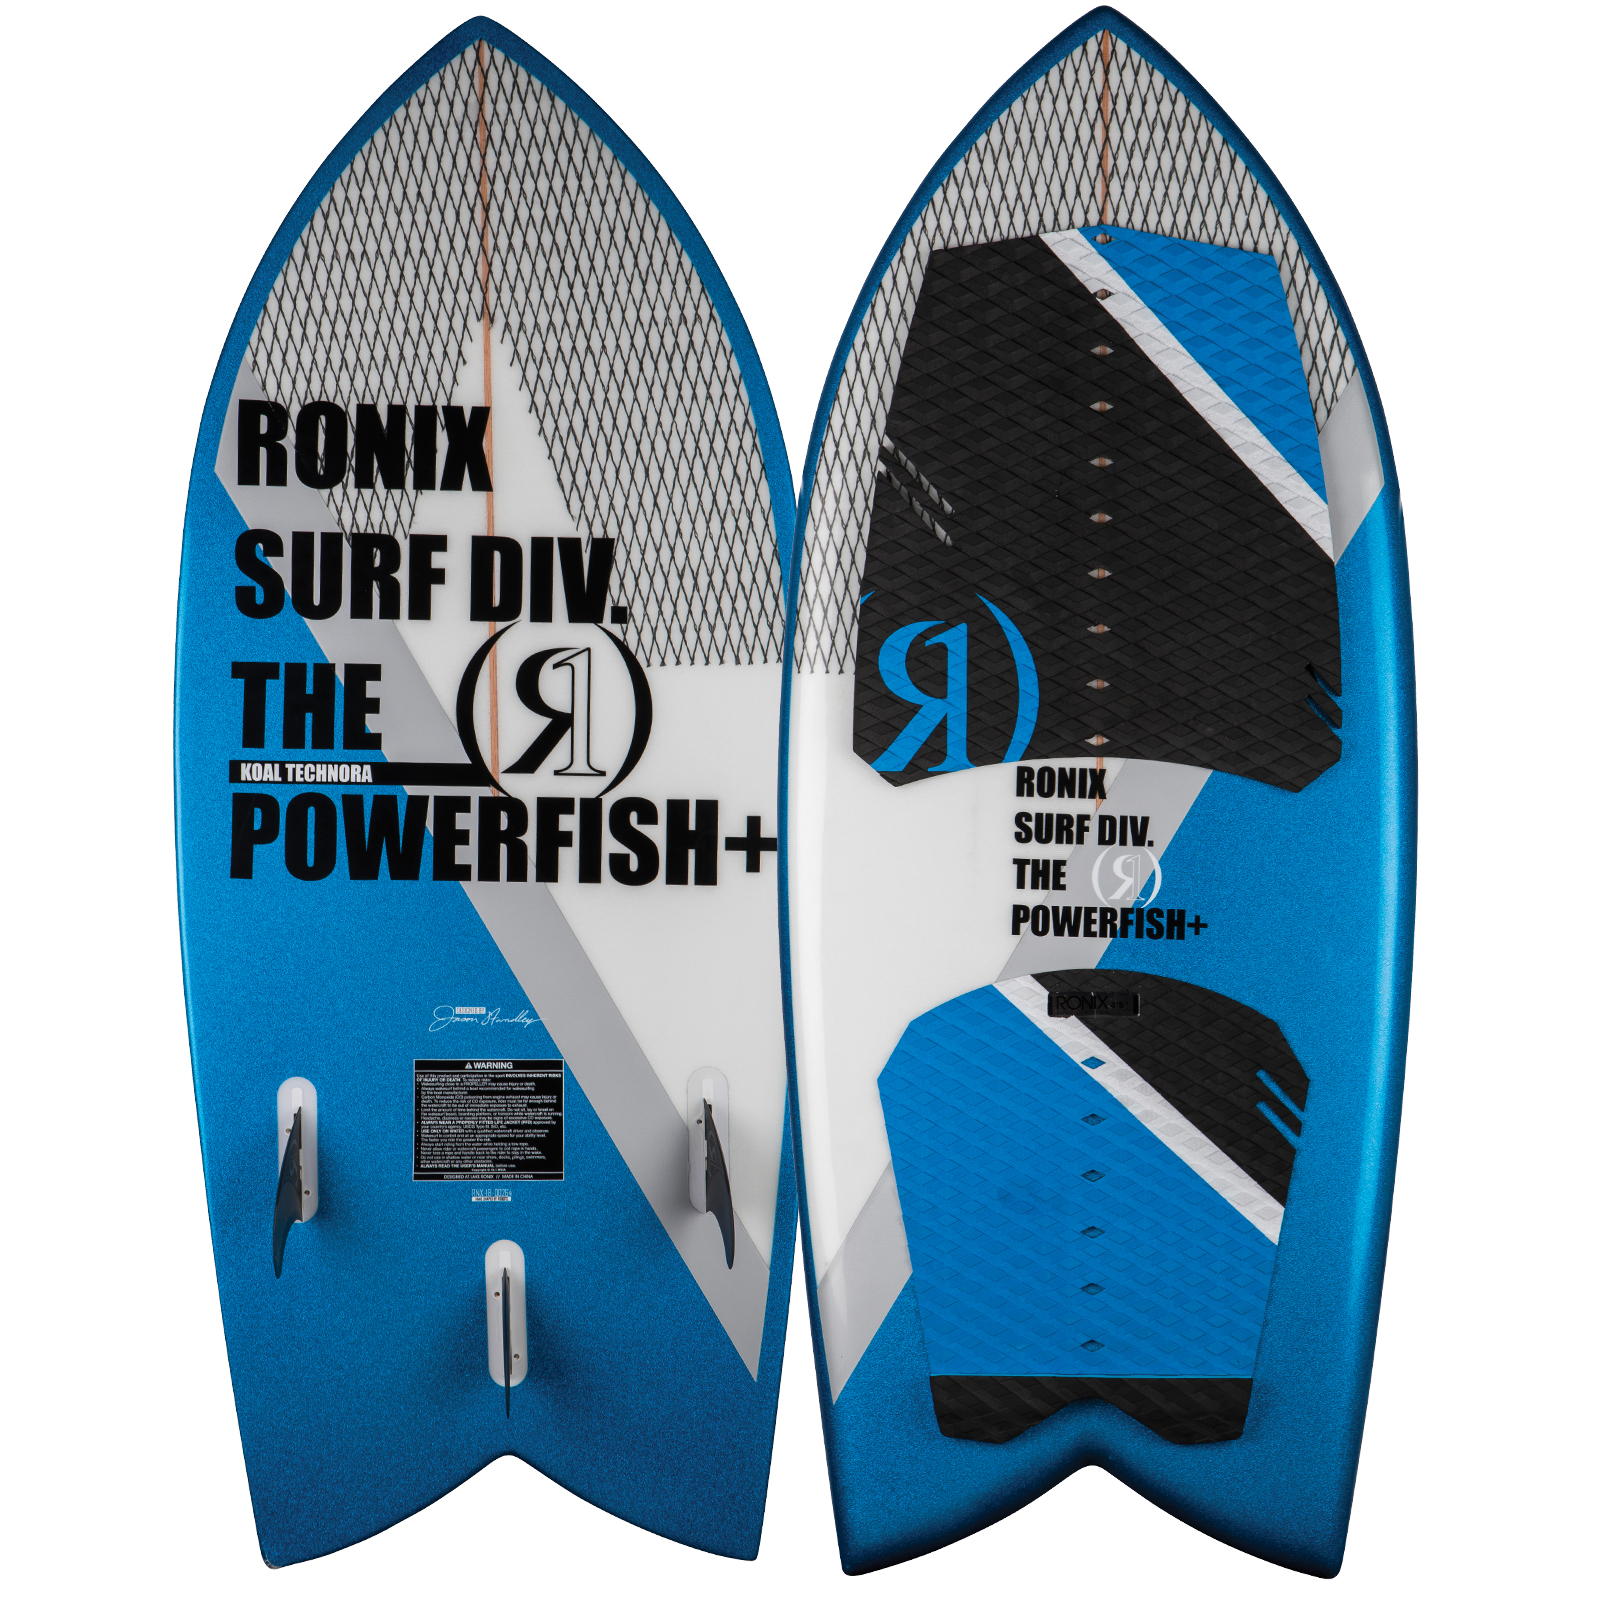 POWERFISH+ TECHNORA WAKESURFER RONIX 2018